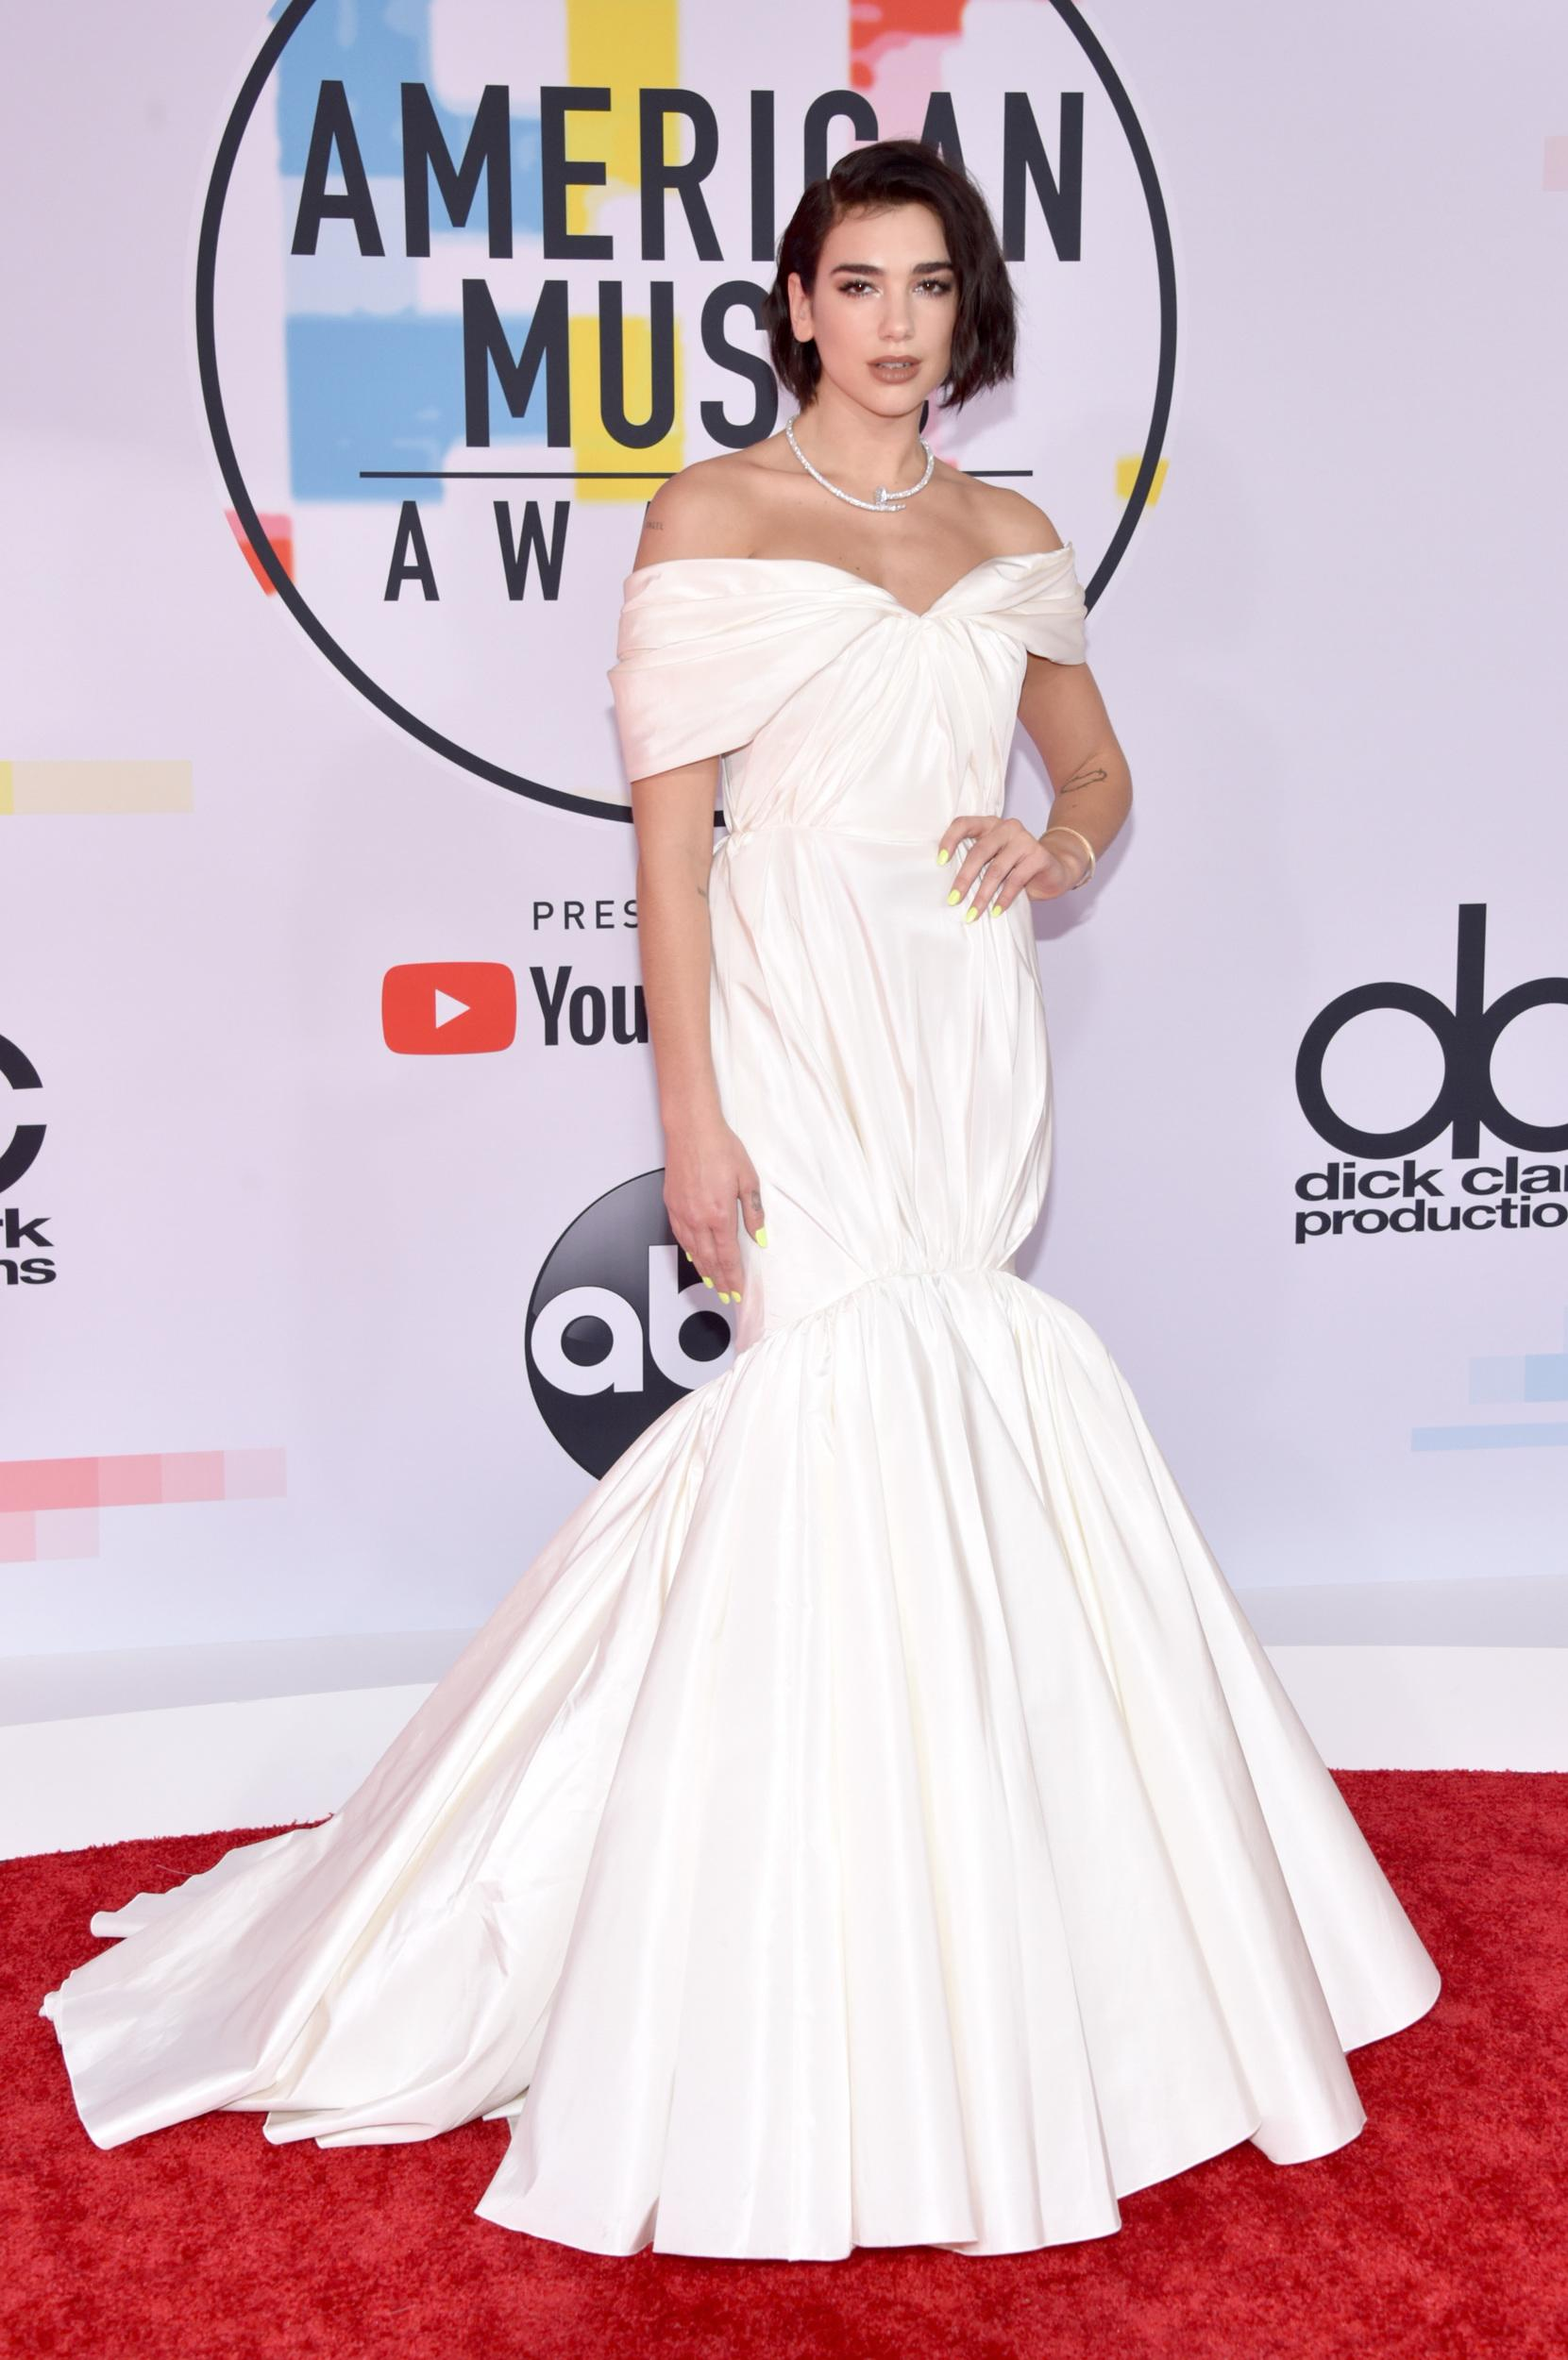 LOS ANGELES, CA - OCTOBER 09: Dua Lipa attends the 2018 American Music Awards at Microsoft Theater on October 9, 2018 in Los Angeles, California. (Photo by John Shearer/Getty Images For dcp)